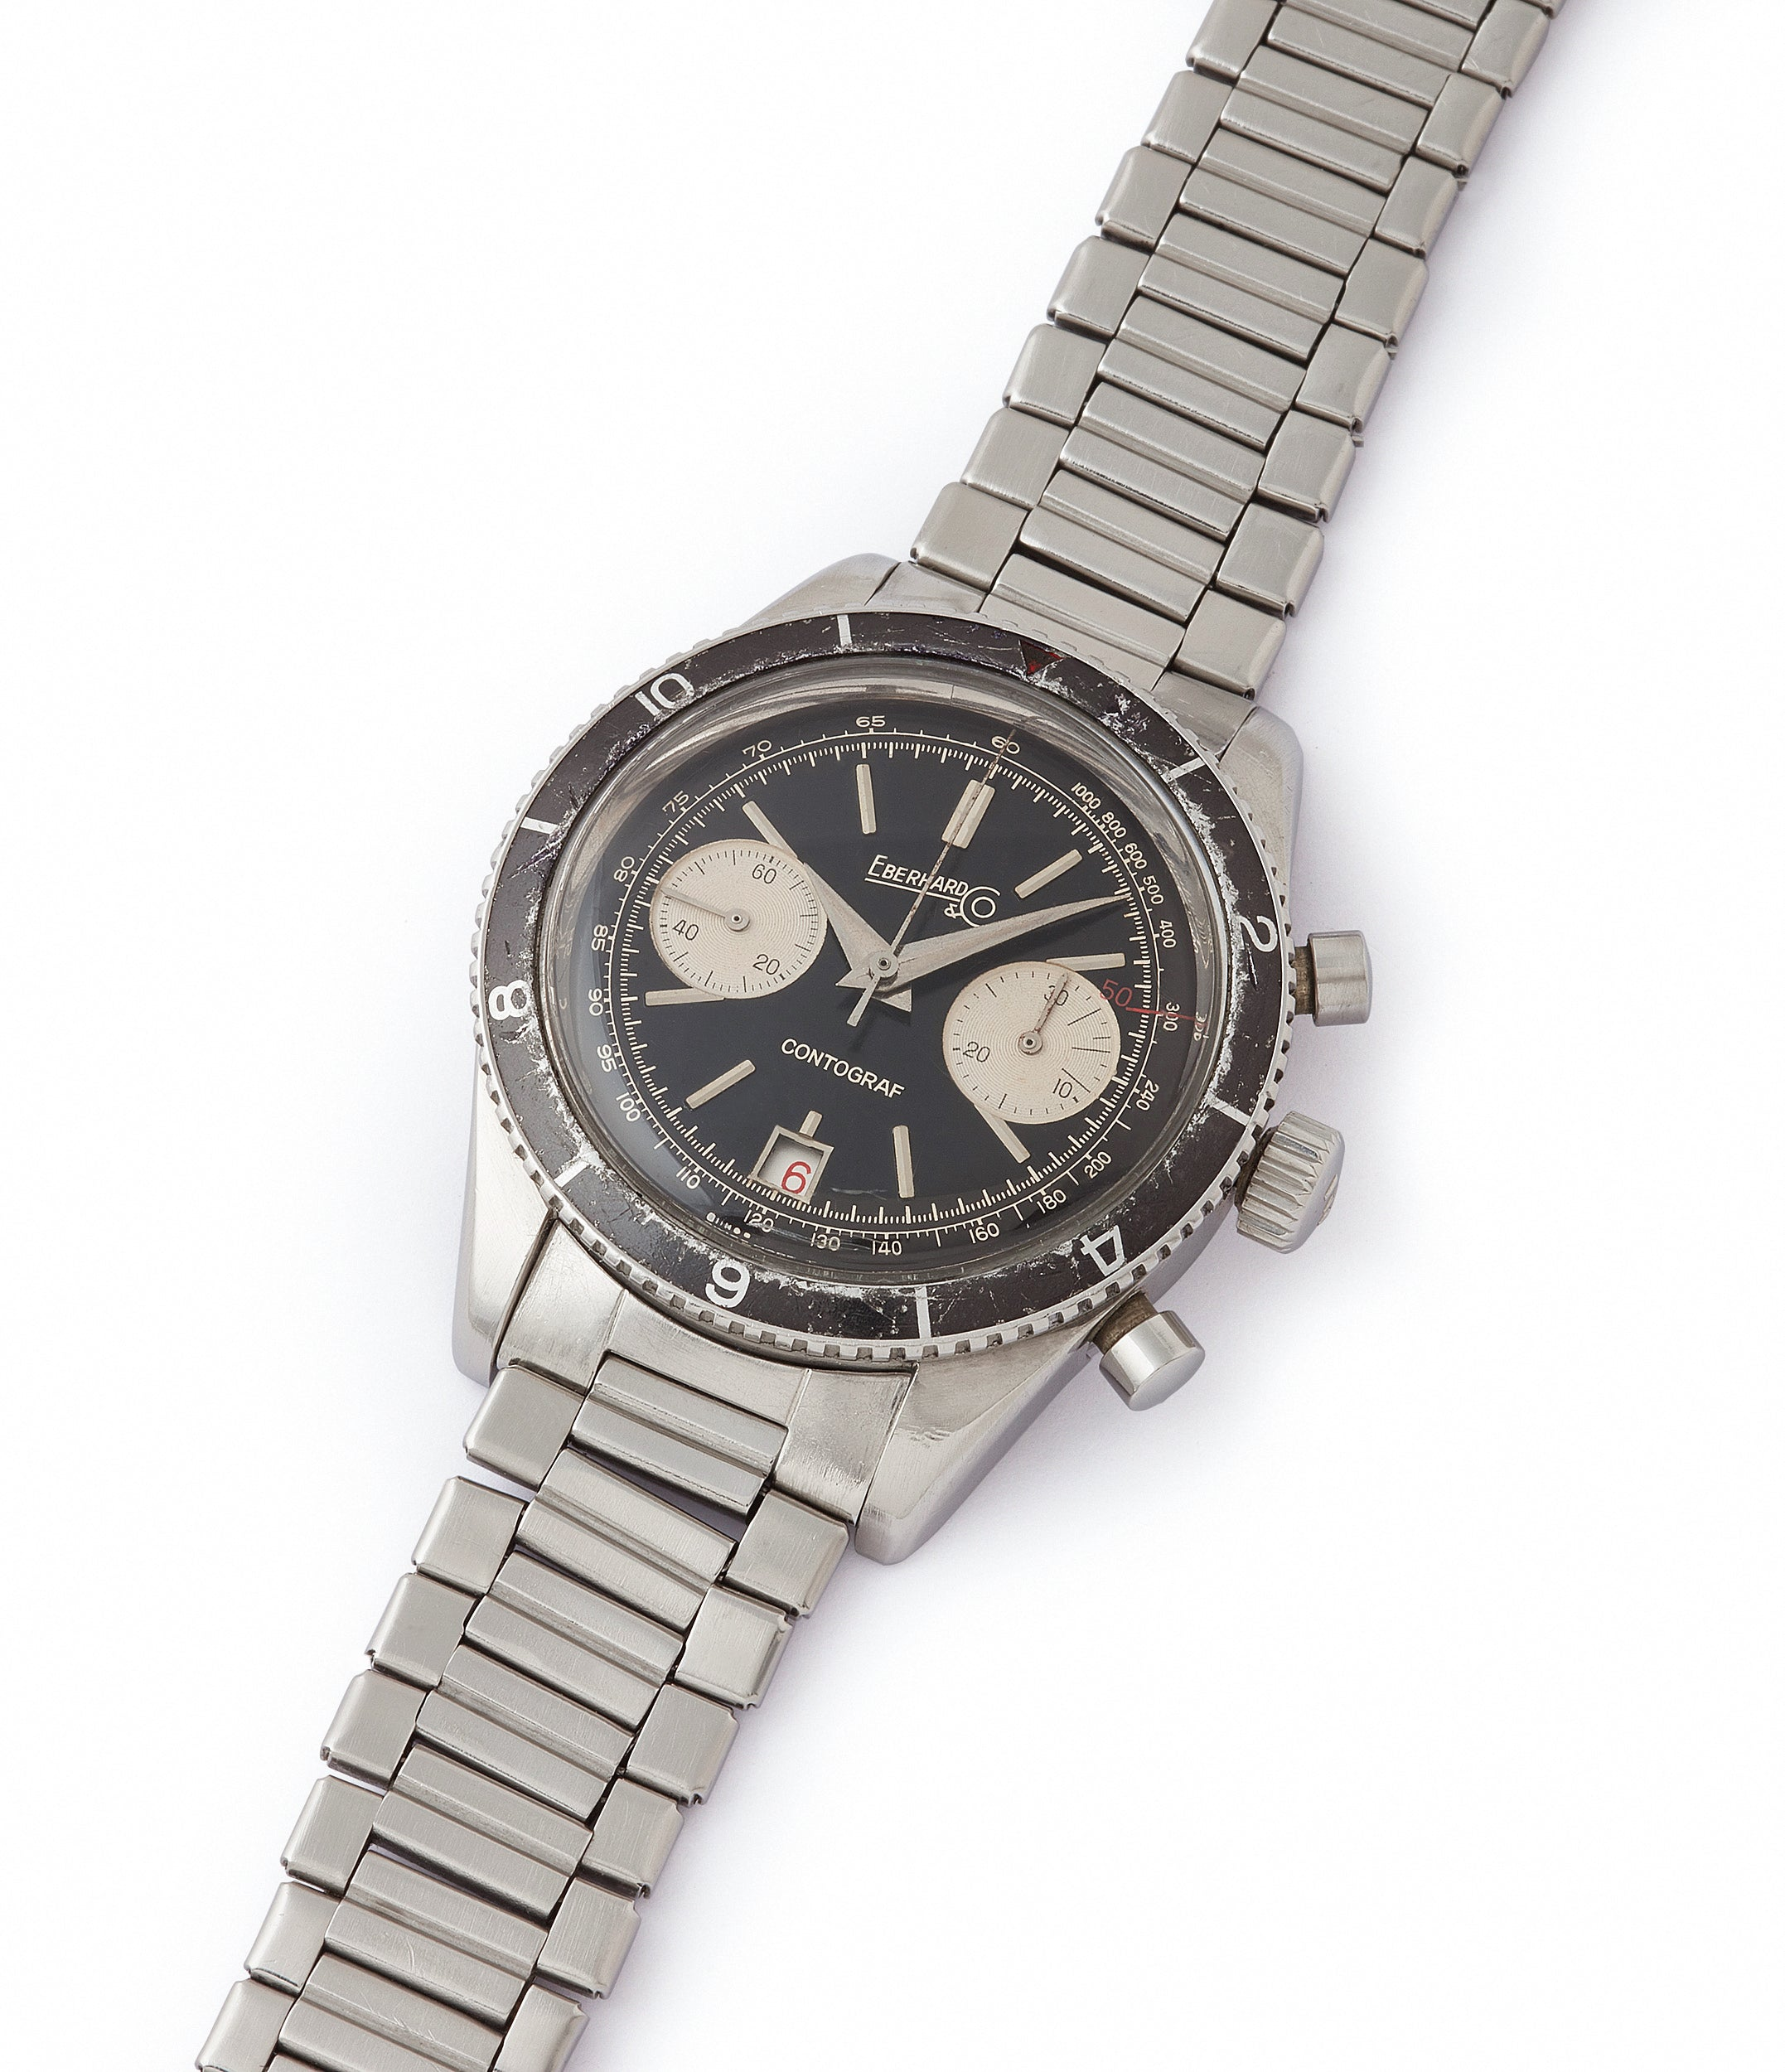 selling vintage Eberhard Contograf chronograph steel sports watch for sale online at A Collected Man London UK specialist of rare watches